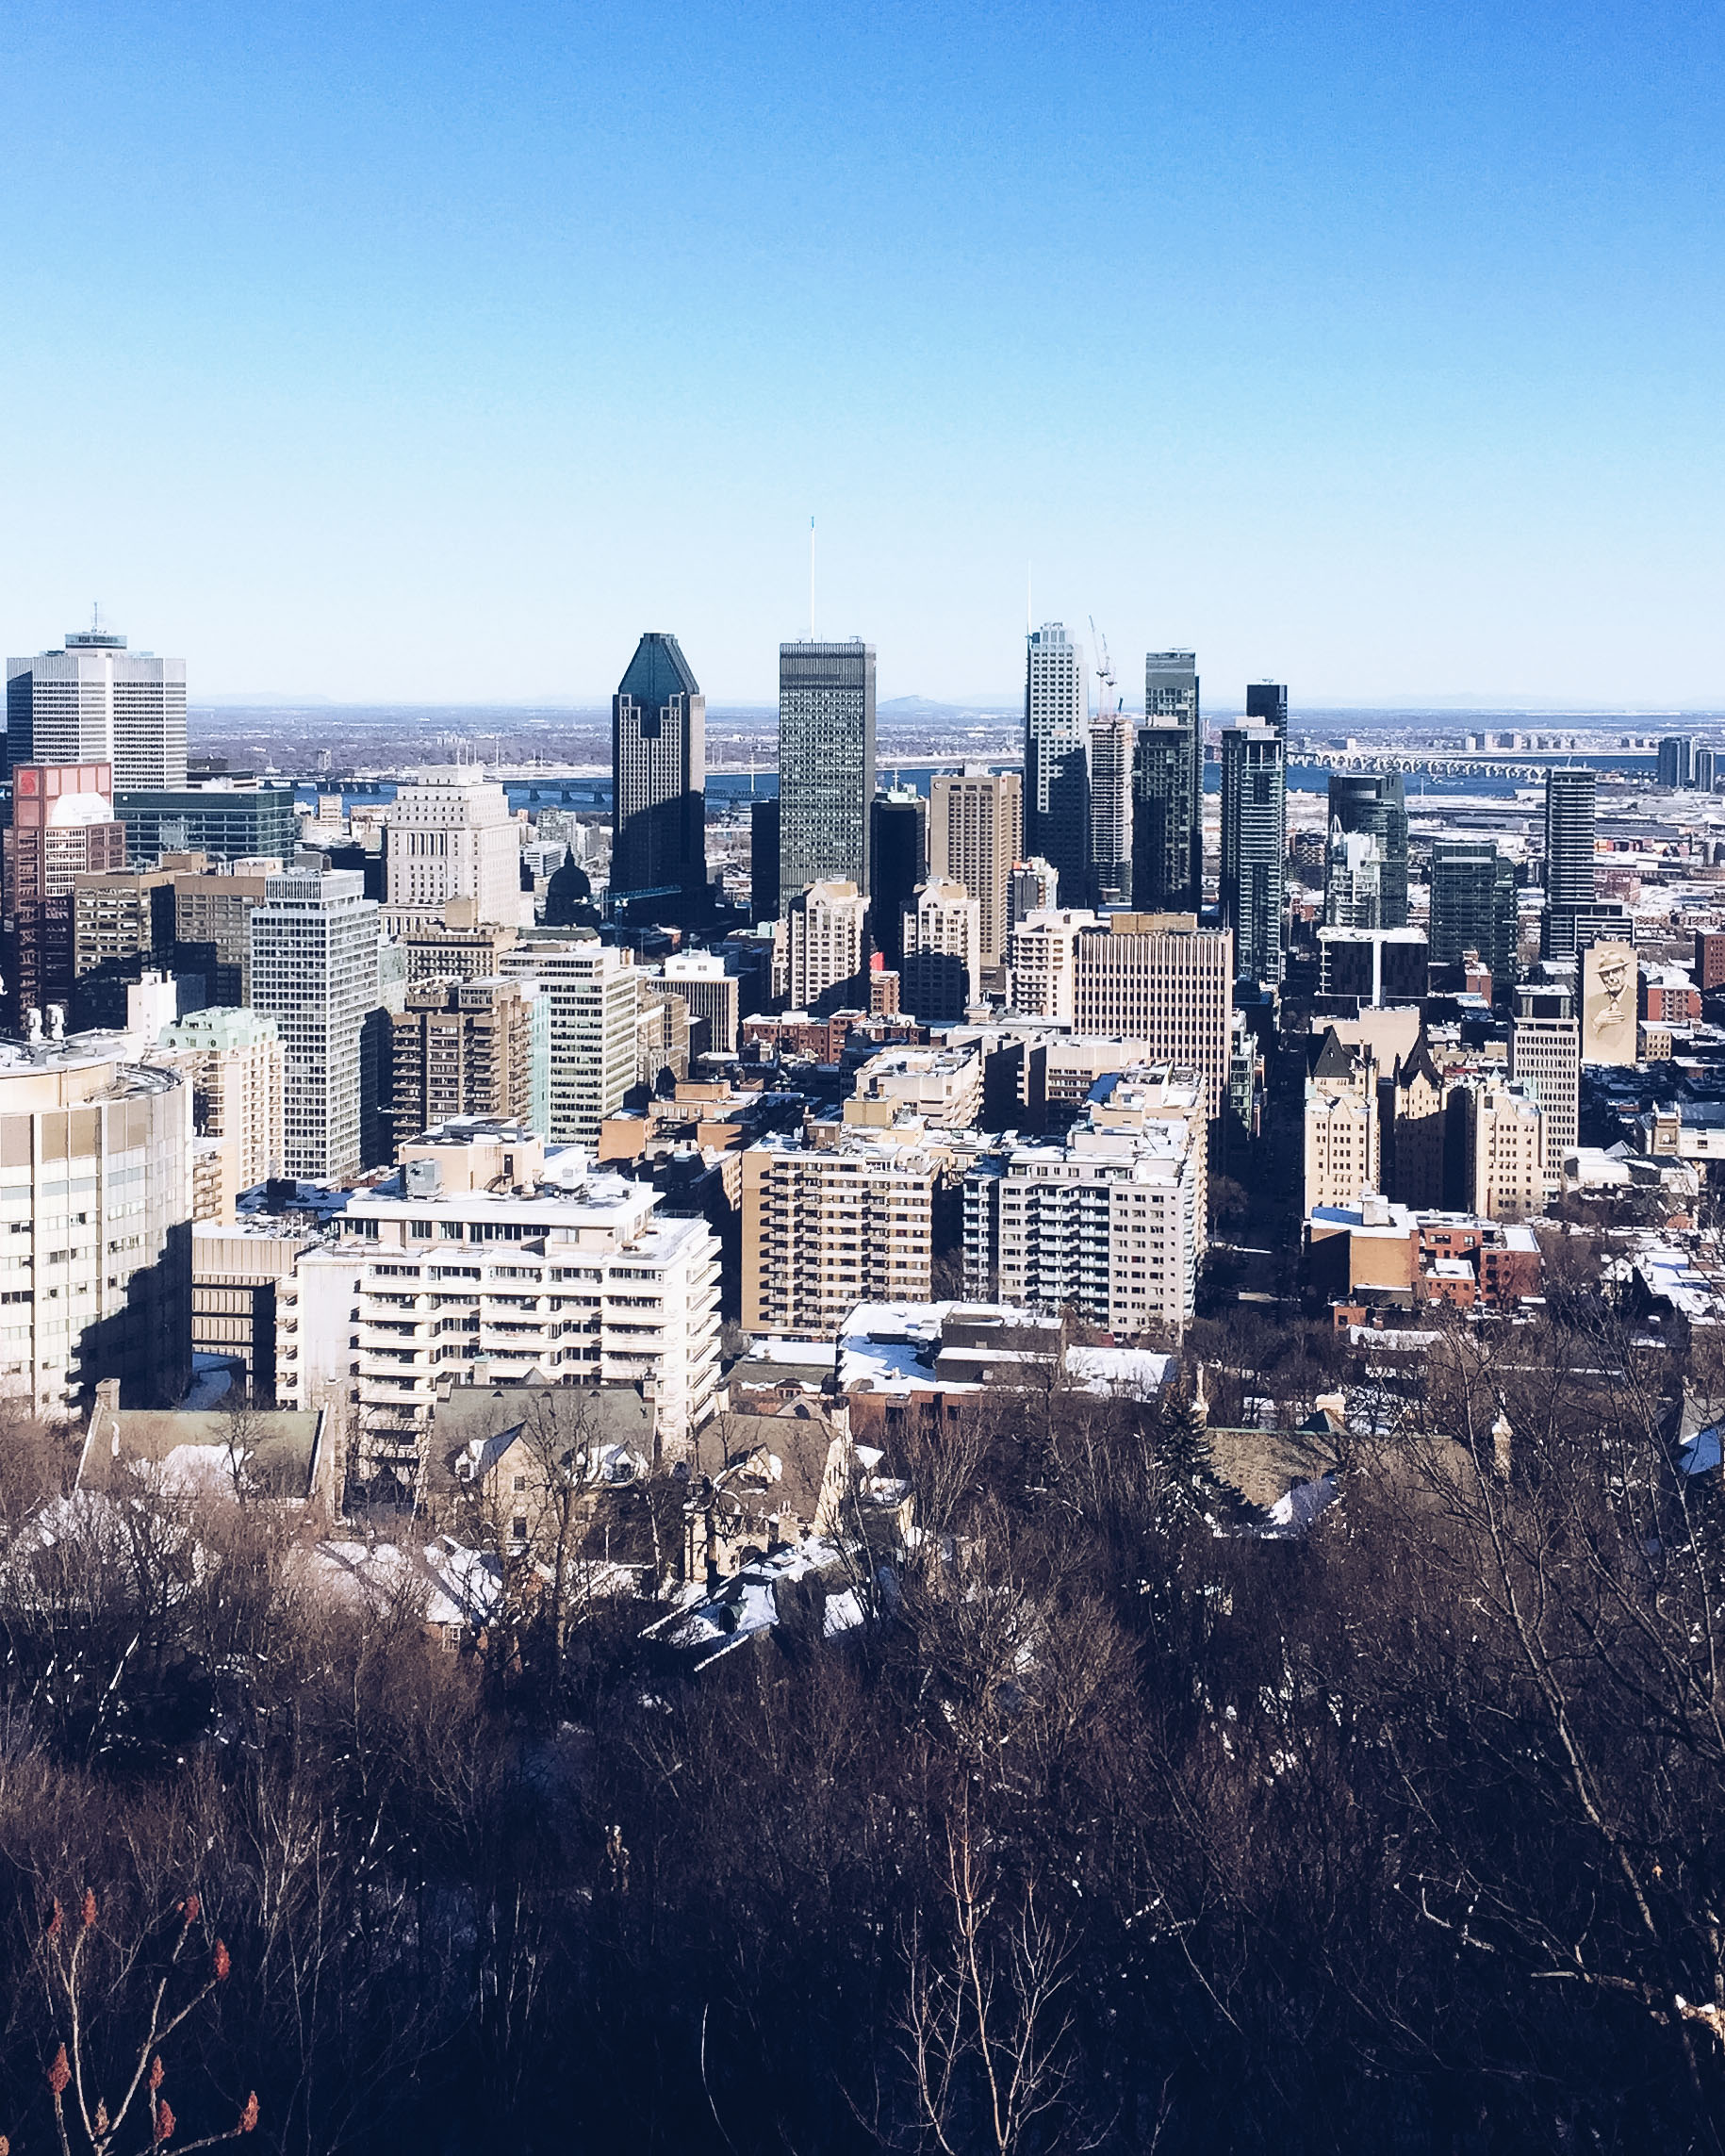 mount royal park things to see in montreal 2018 travel blog